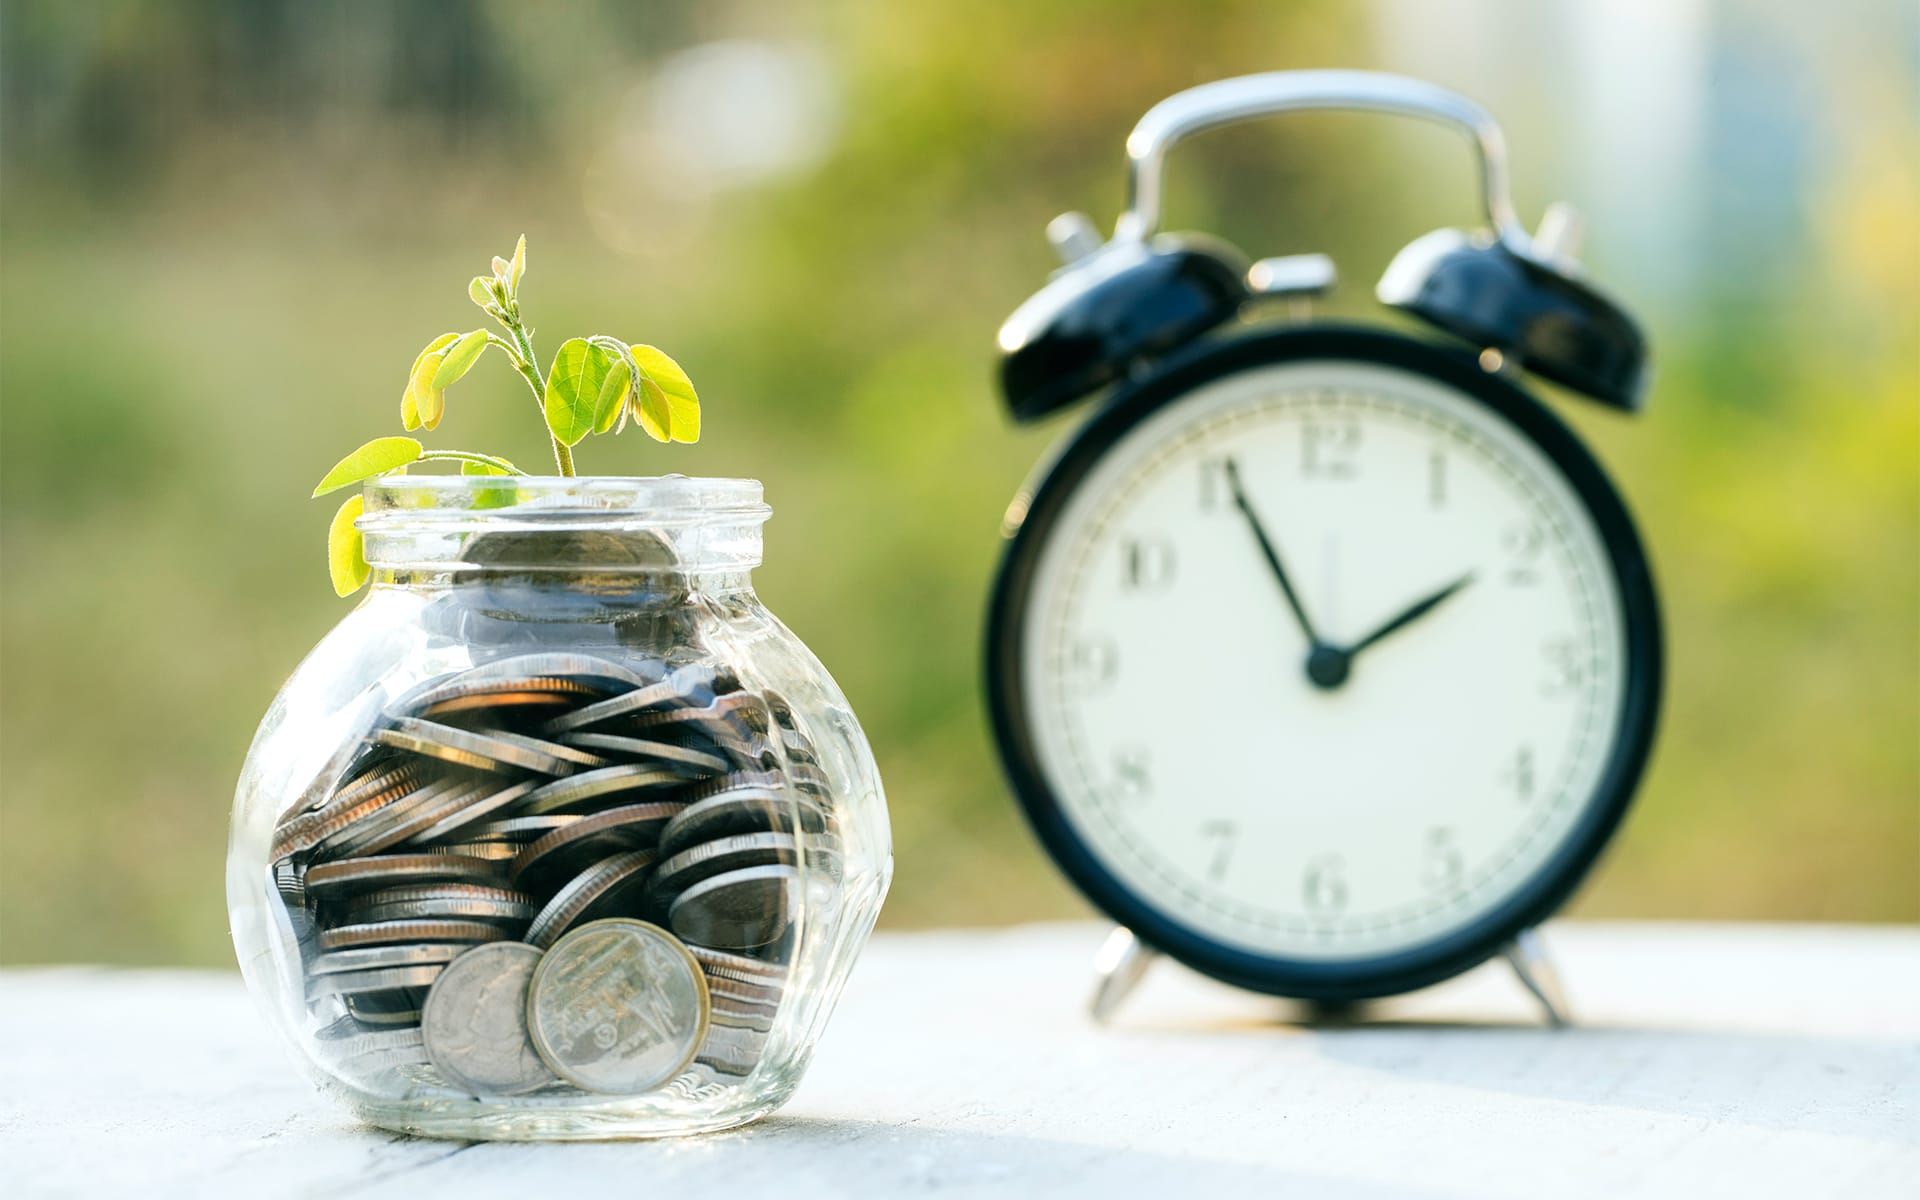 Workflow Management System for saving time and money: Clock with money pot